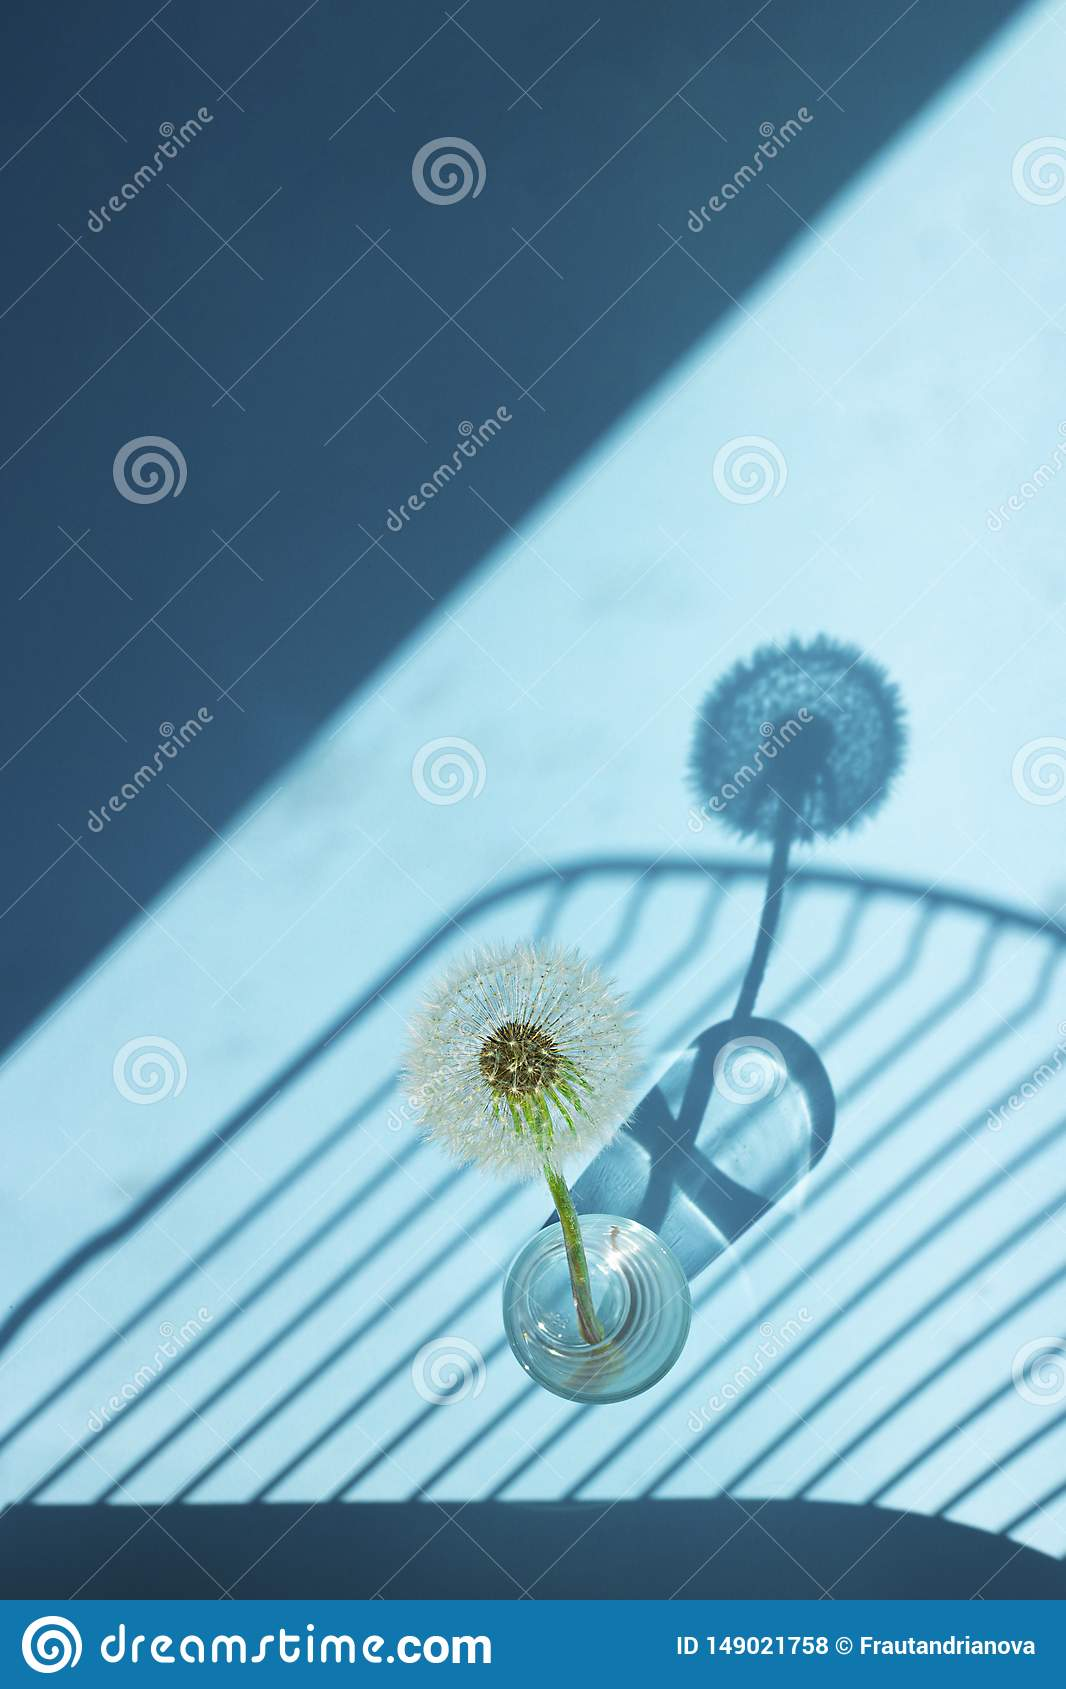 White Dandelion in small glass in bright light with lines of shadows on blue background. Creative contemporary pop art. Vertical